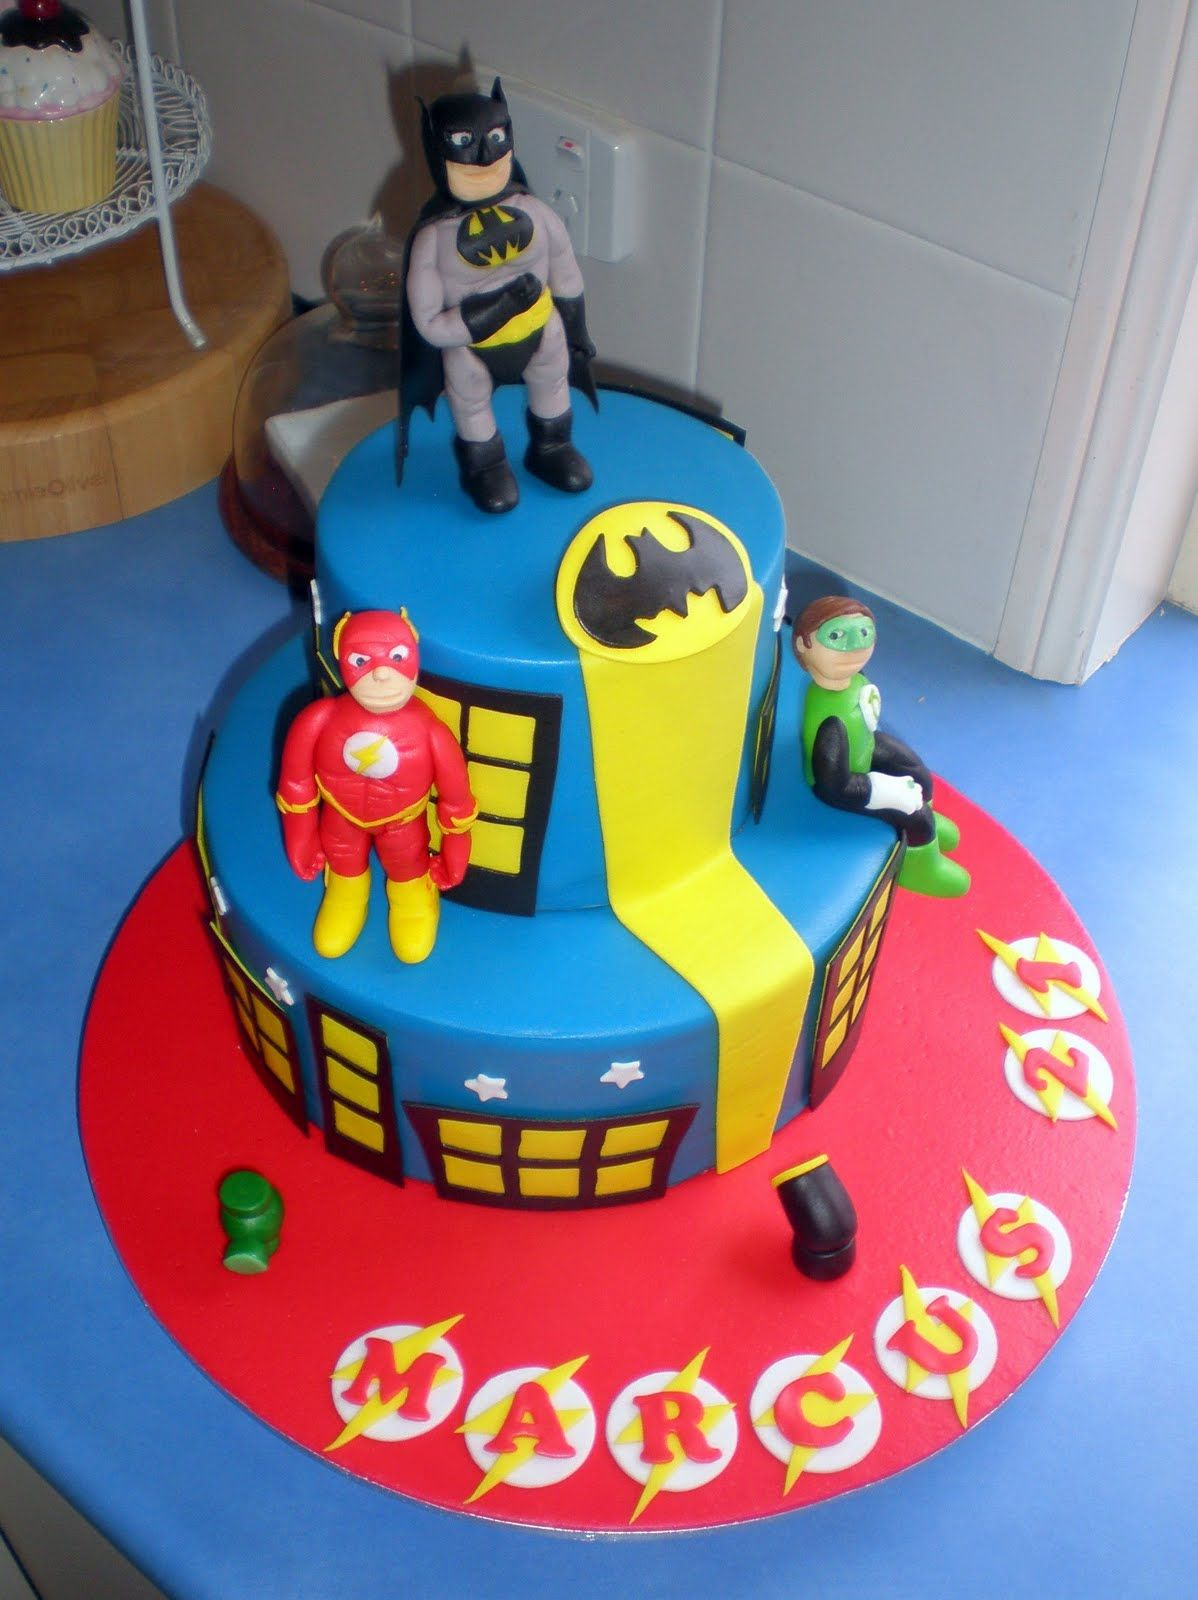 I want this to be my wedding cake!! Then we will have a